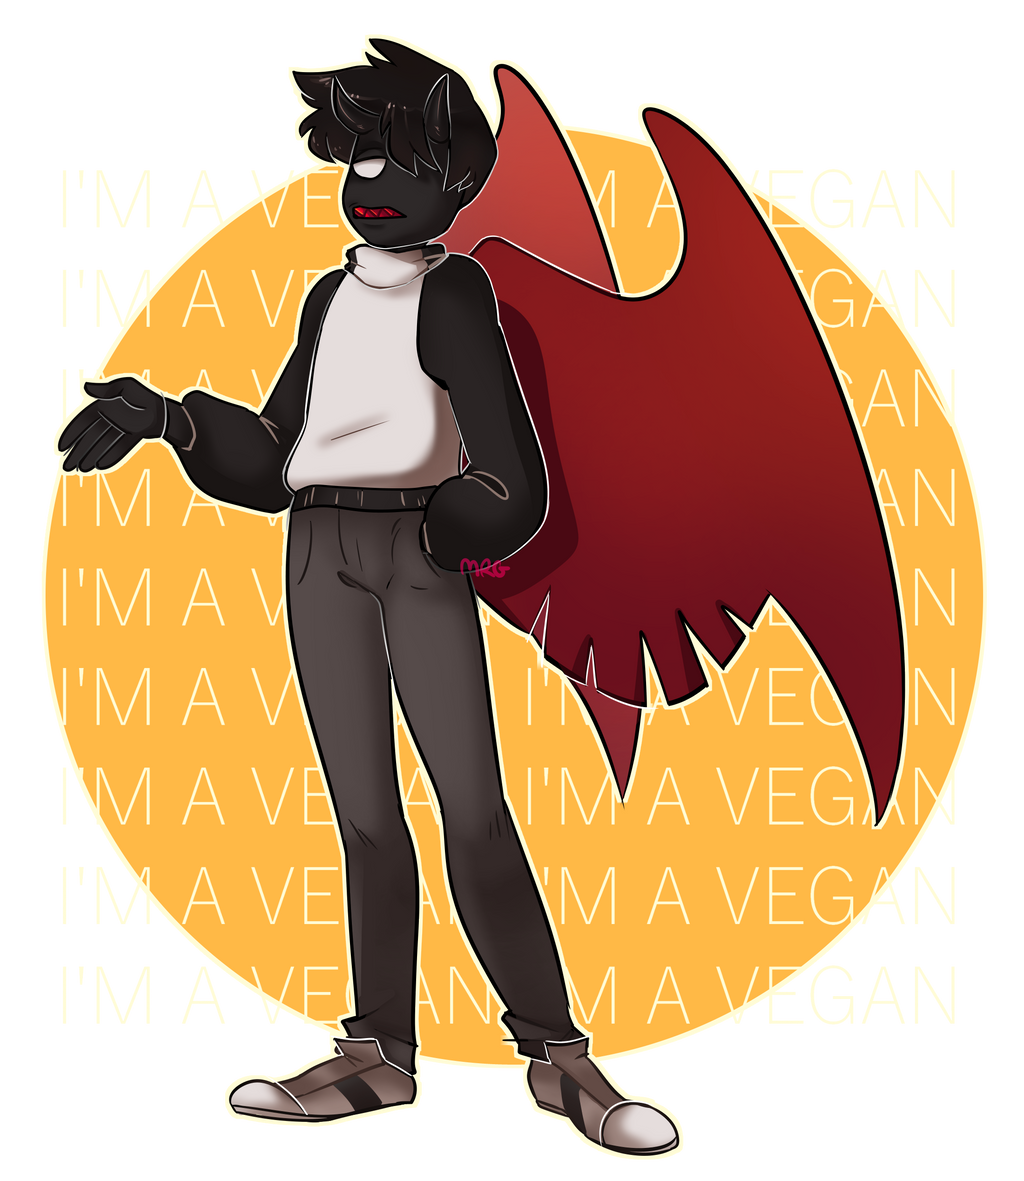 i'm a vegan - Commission by Merengeee